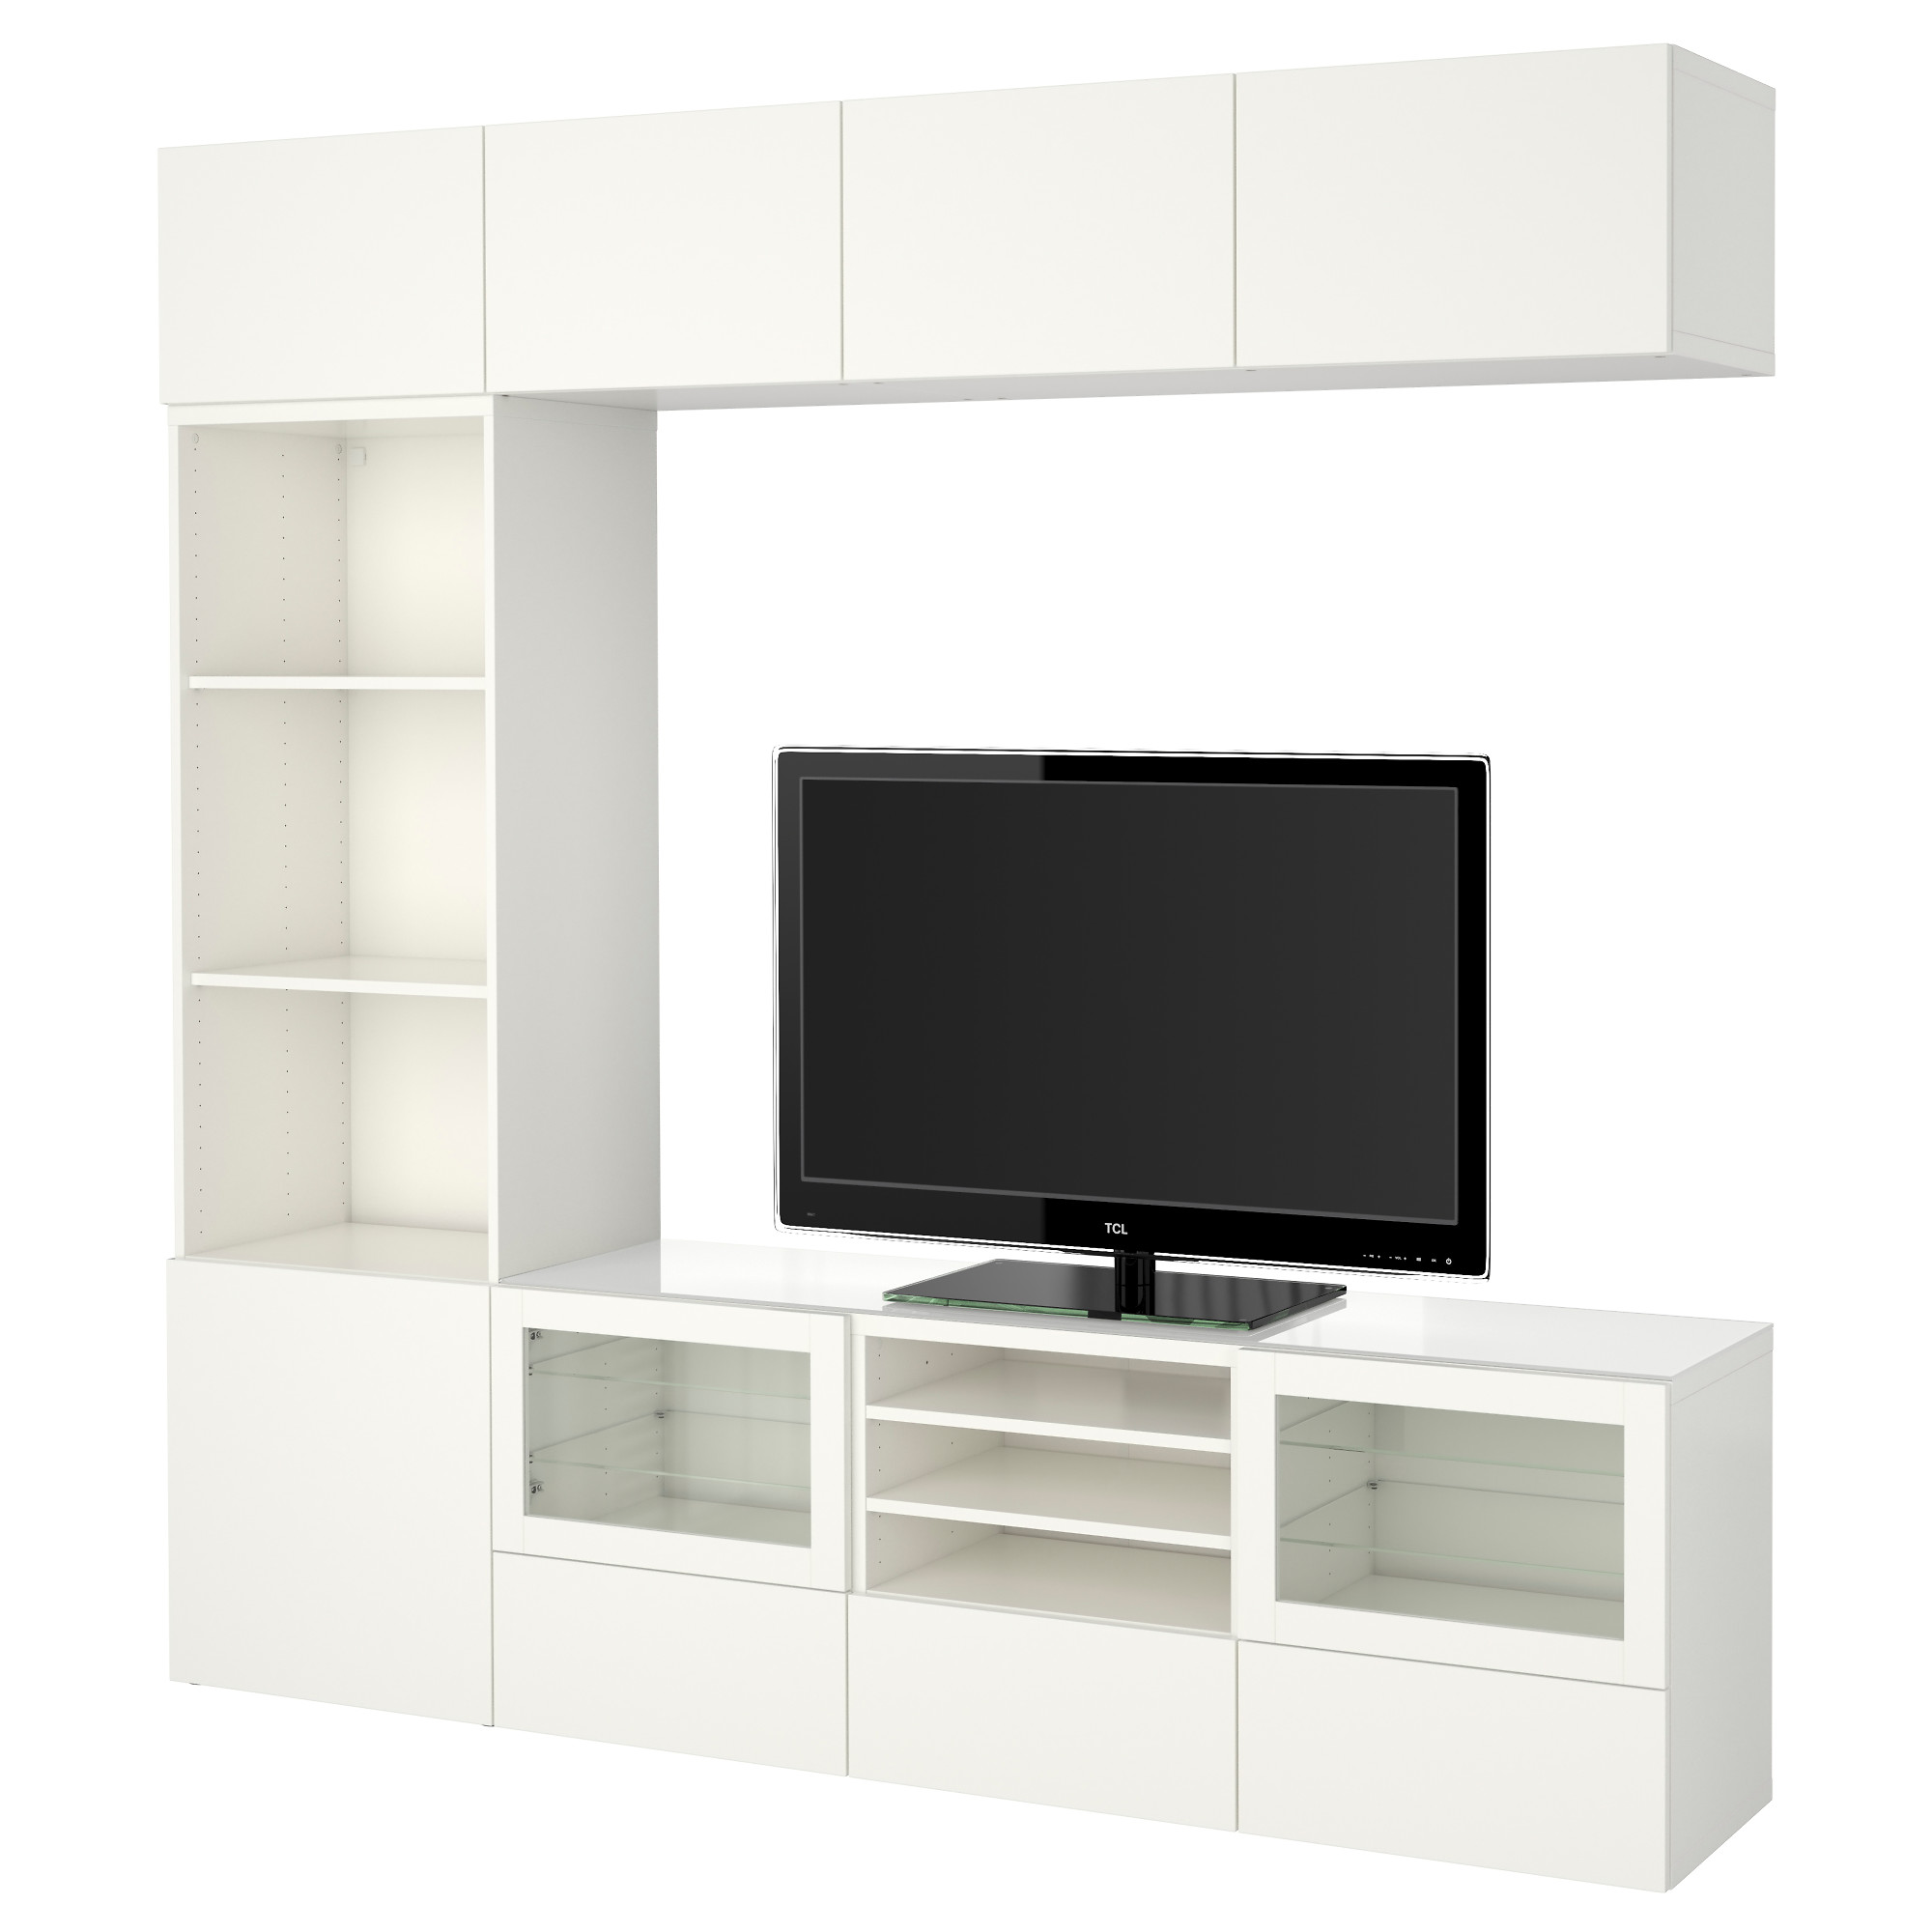 Superior BESTÅ TV Storage Combination/glass Doors, Lappviken, Sindvik White Clear  Glass Width: